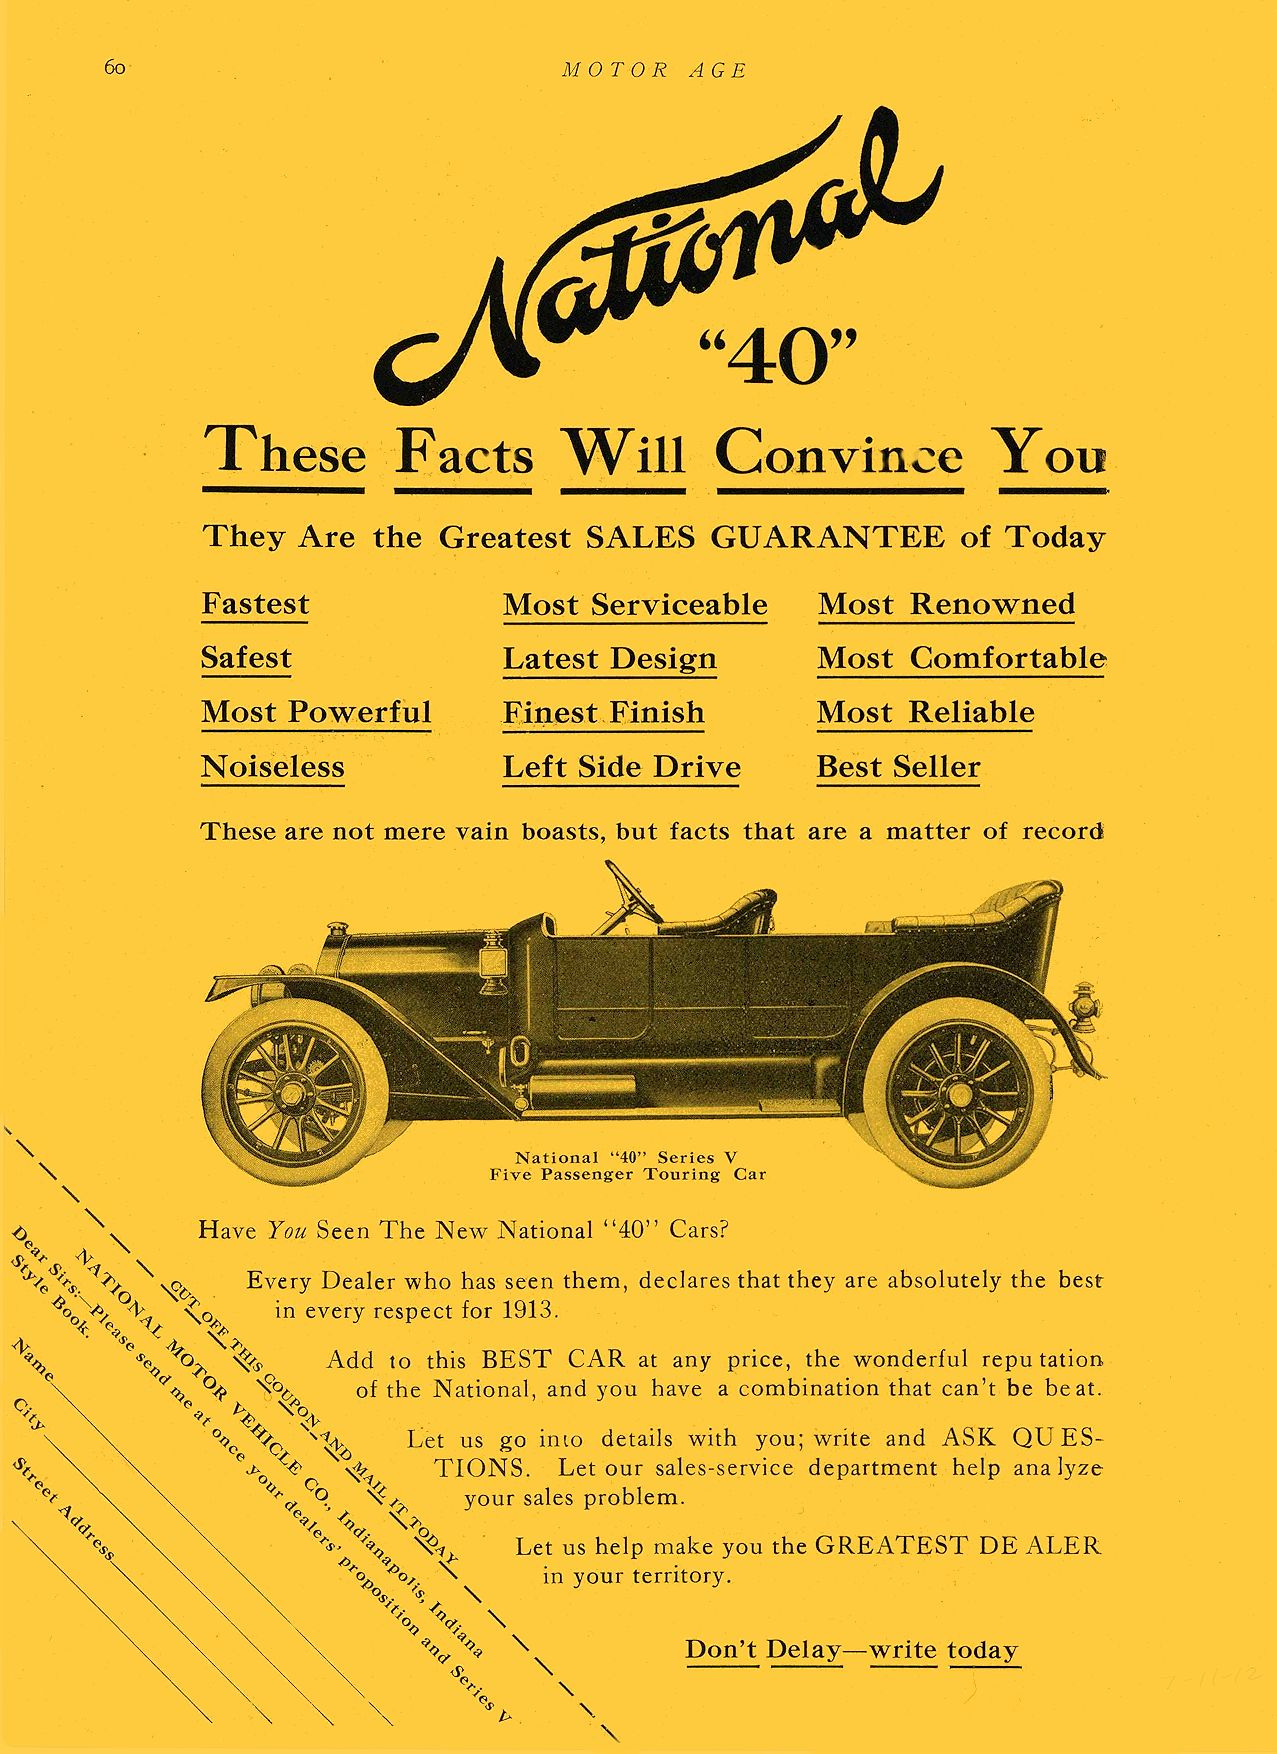 """1912 7 11 NATIONAL National """"40"""" These Facts Will Convince You NATIONAL MOTOR VEHICLE CO. Indianapolis, IND MOTOR AGE July 11, 1912 9″x12″ page 60"""